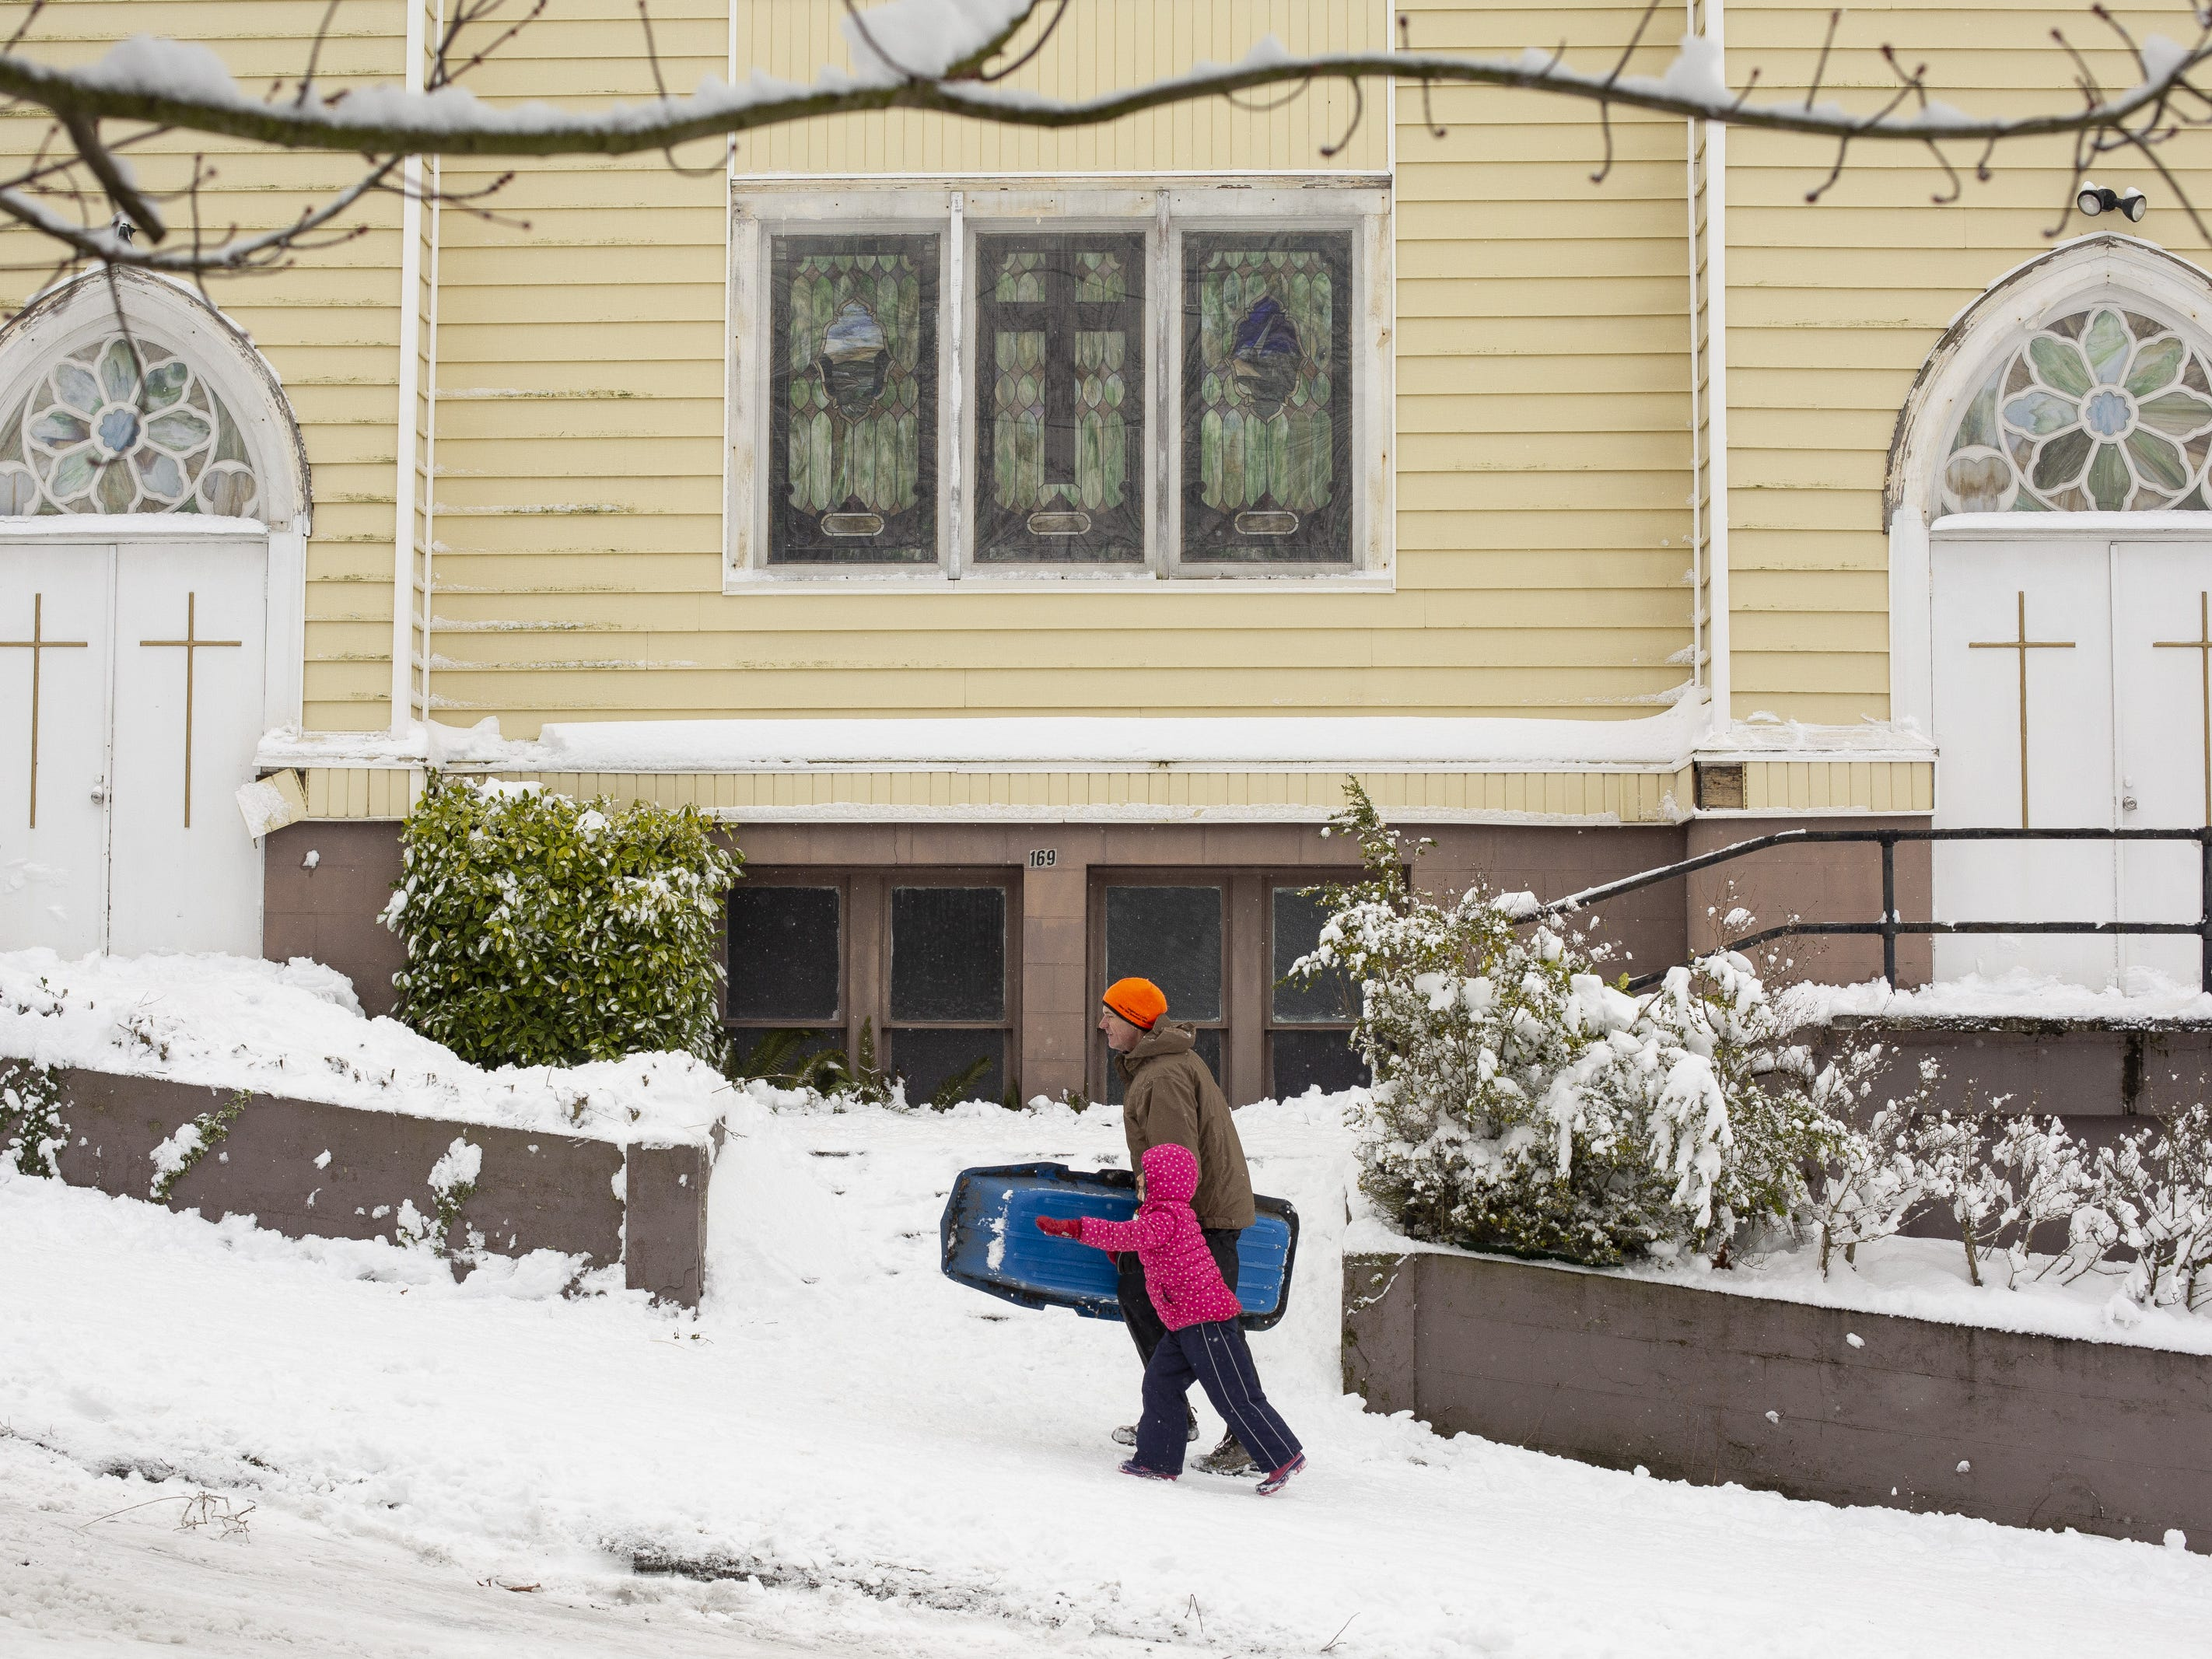 People walk up a hill to go sledding in the Phinney Ridge neighborhood after a large storm blanketed the city with snow on February 9, 2019 in Seattle, Washington.